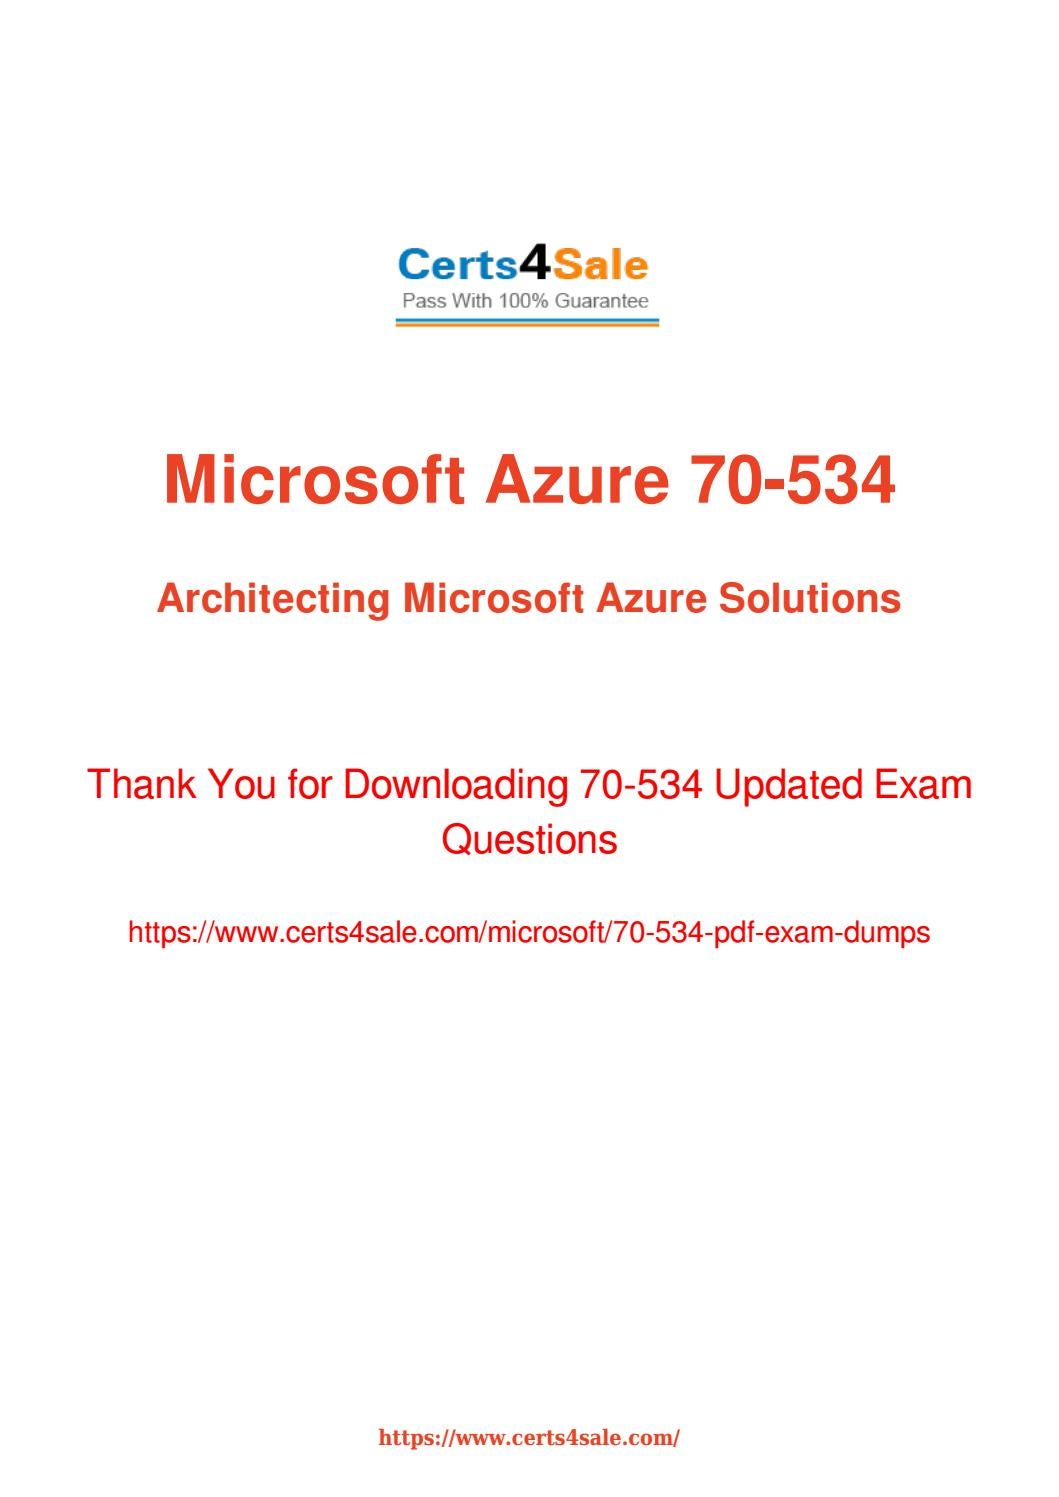 Try Microsoft 70-534 Exam Questions With 100% Success